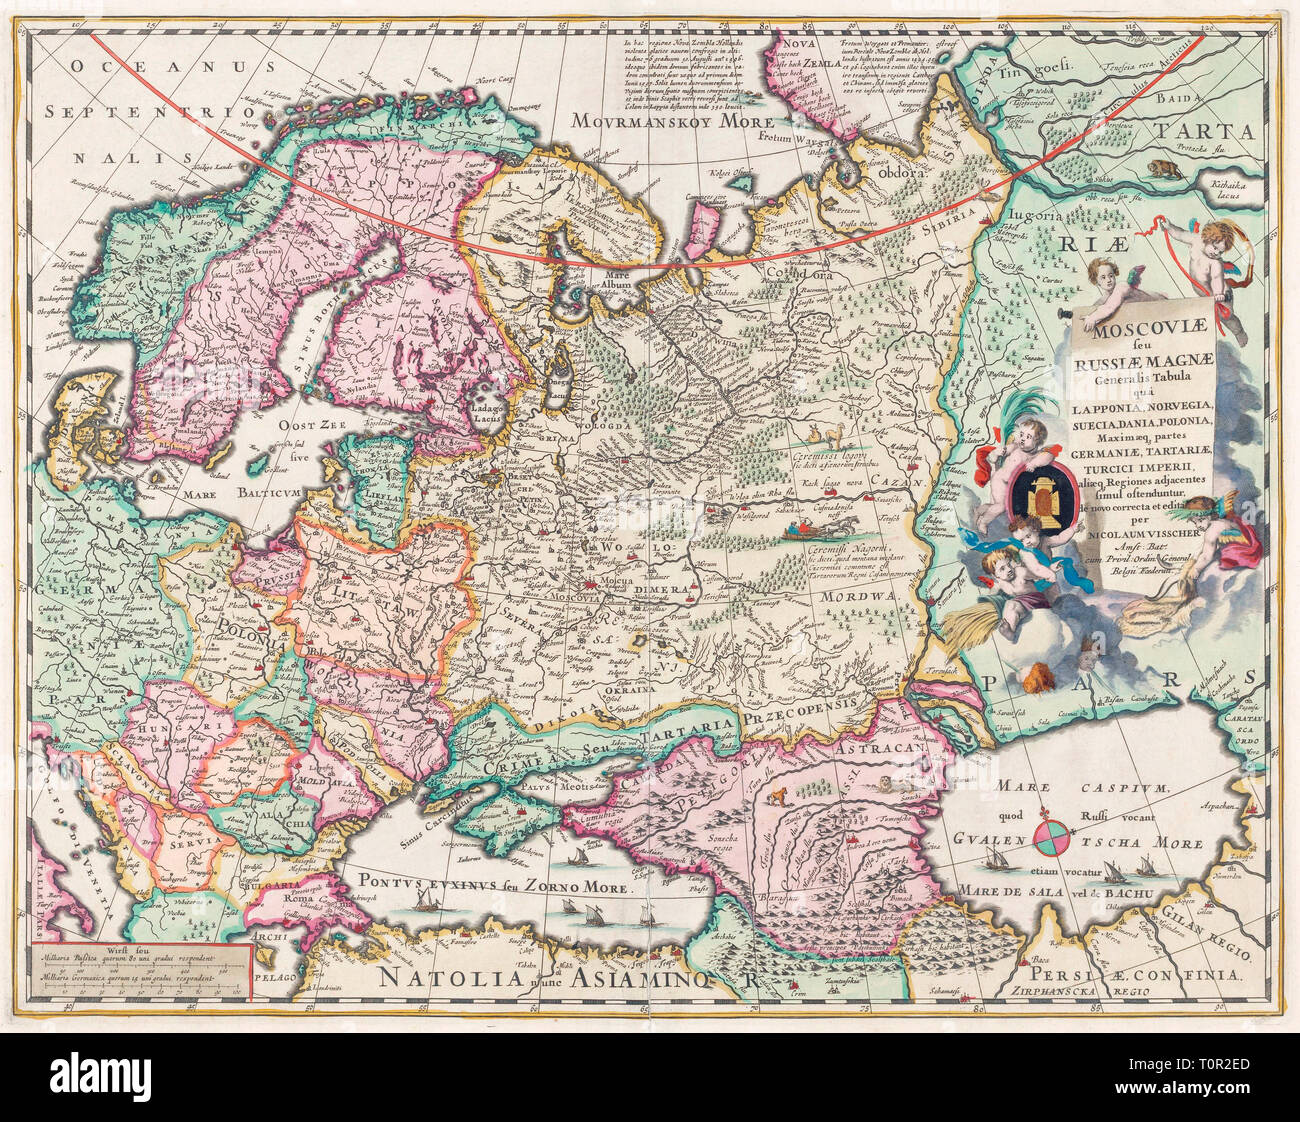 Map Of Germany And Surrounding Countries.Germany Map Stock Photos Germany Map Stock Images Page 2 Alamy